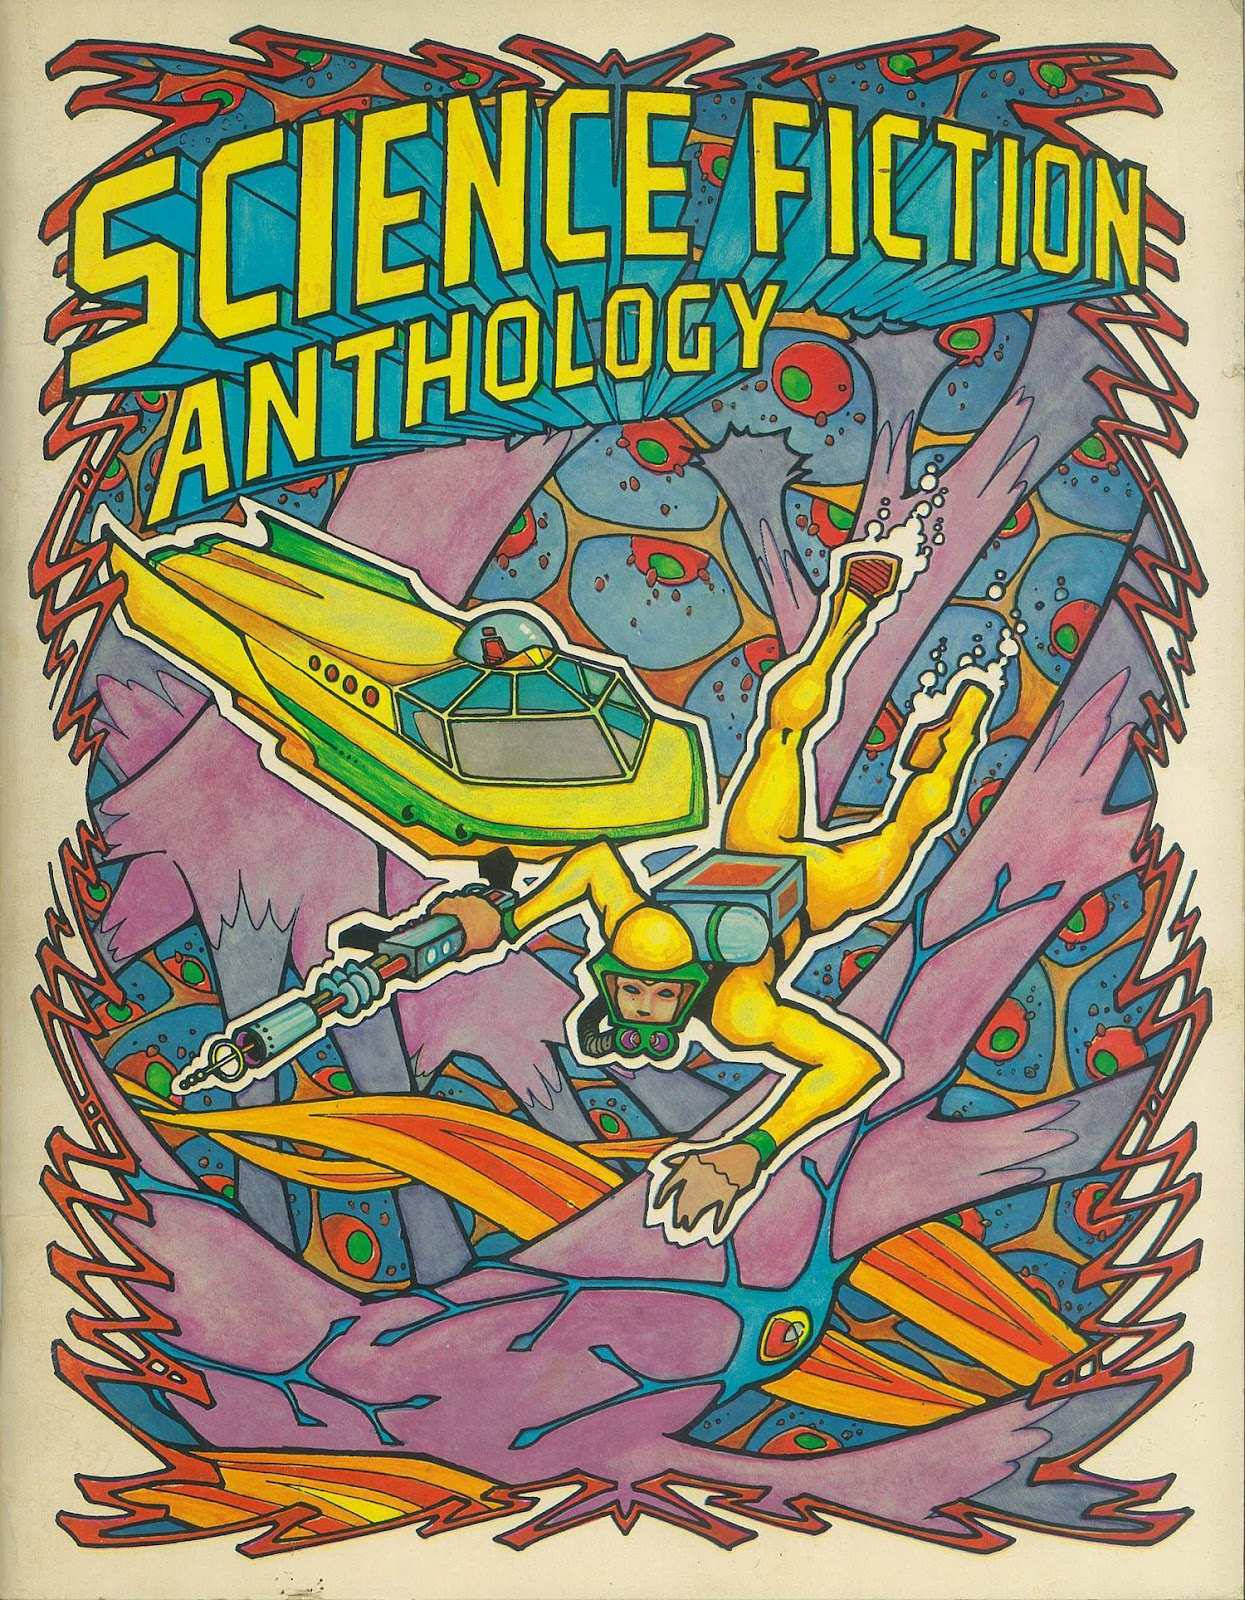 troubador press science fiction anthology  1974  and tales of fantasy  1975  coloring albums Space Theme Coloring Books  Sci Fi Coloring Book